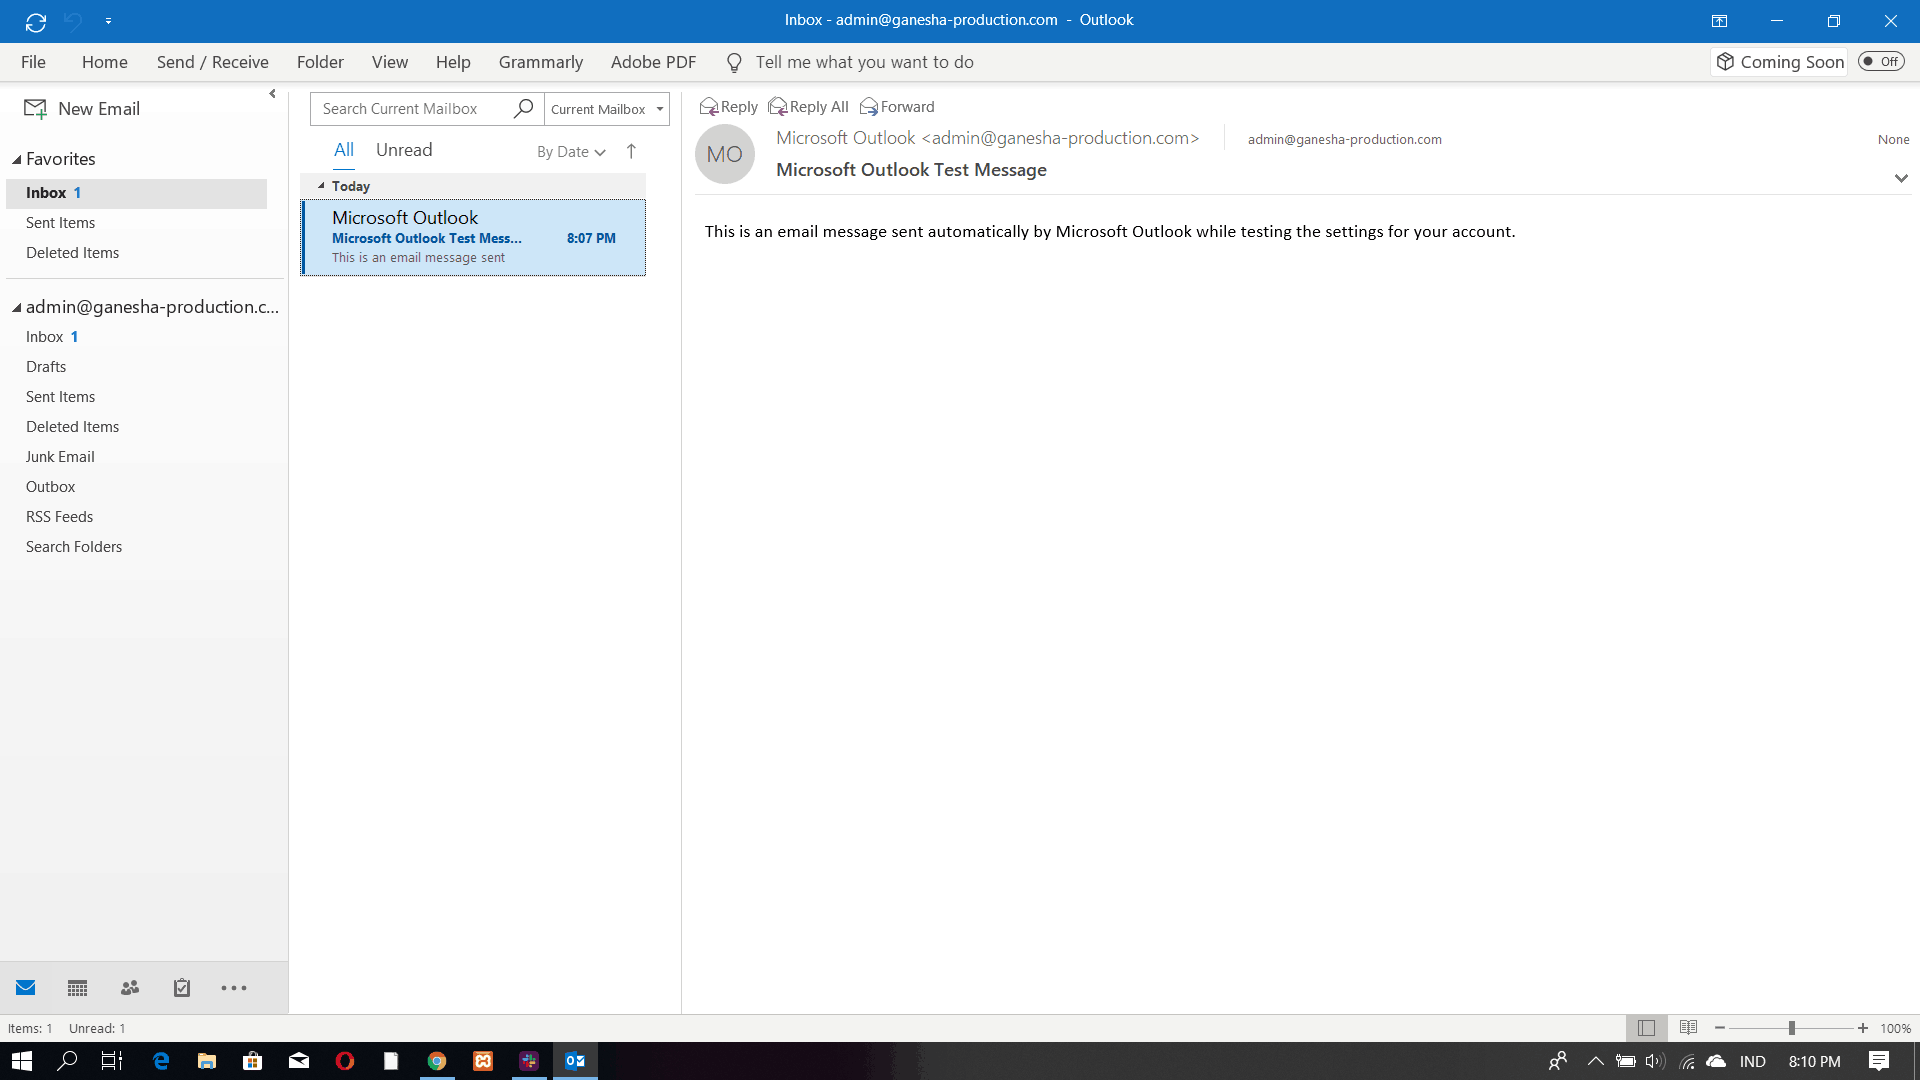 Microsoft Outlook 2016 interface